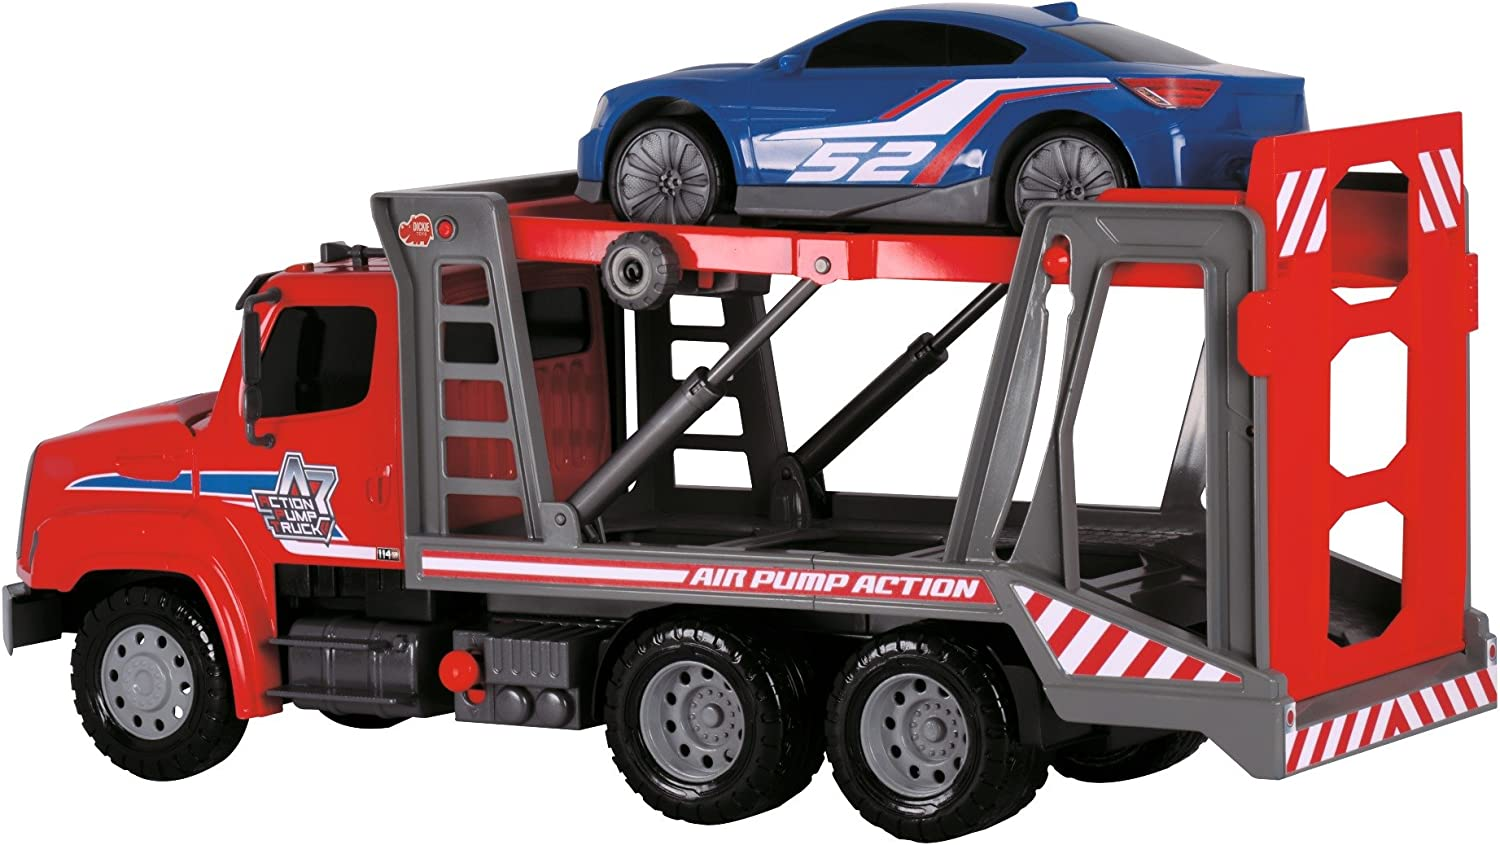 Dickie Toys 22 Air Pump Action Car Transporter Truck Vehicle